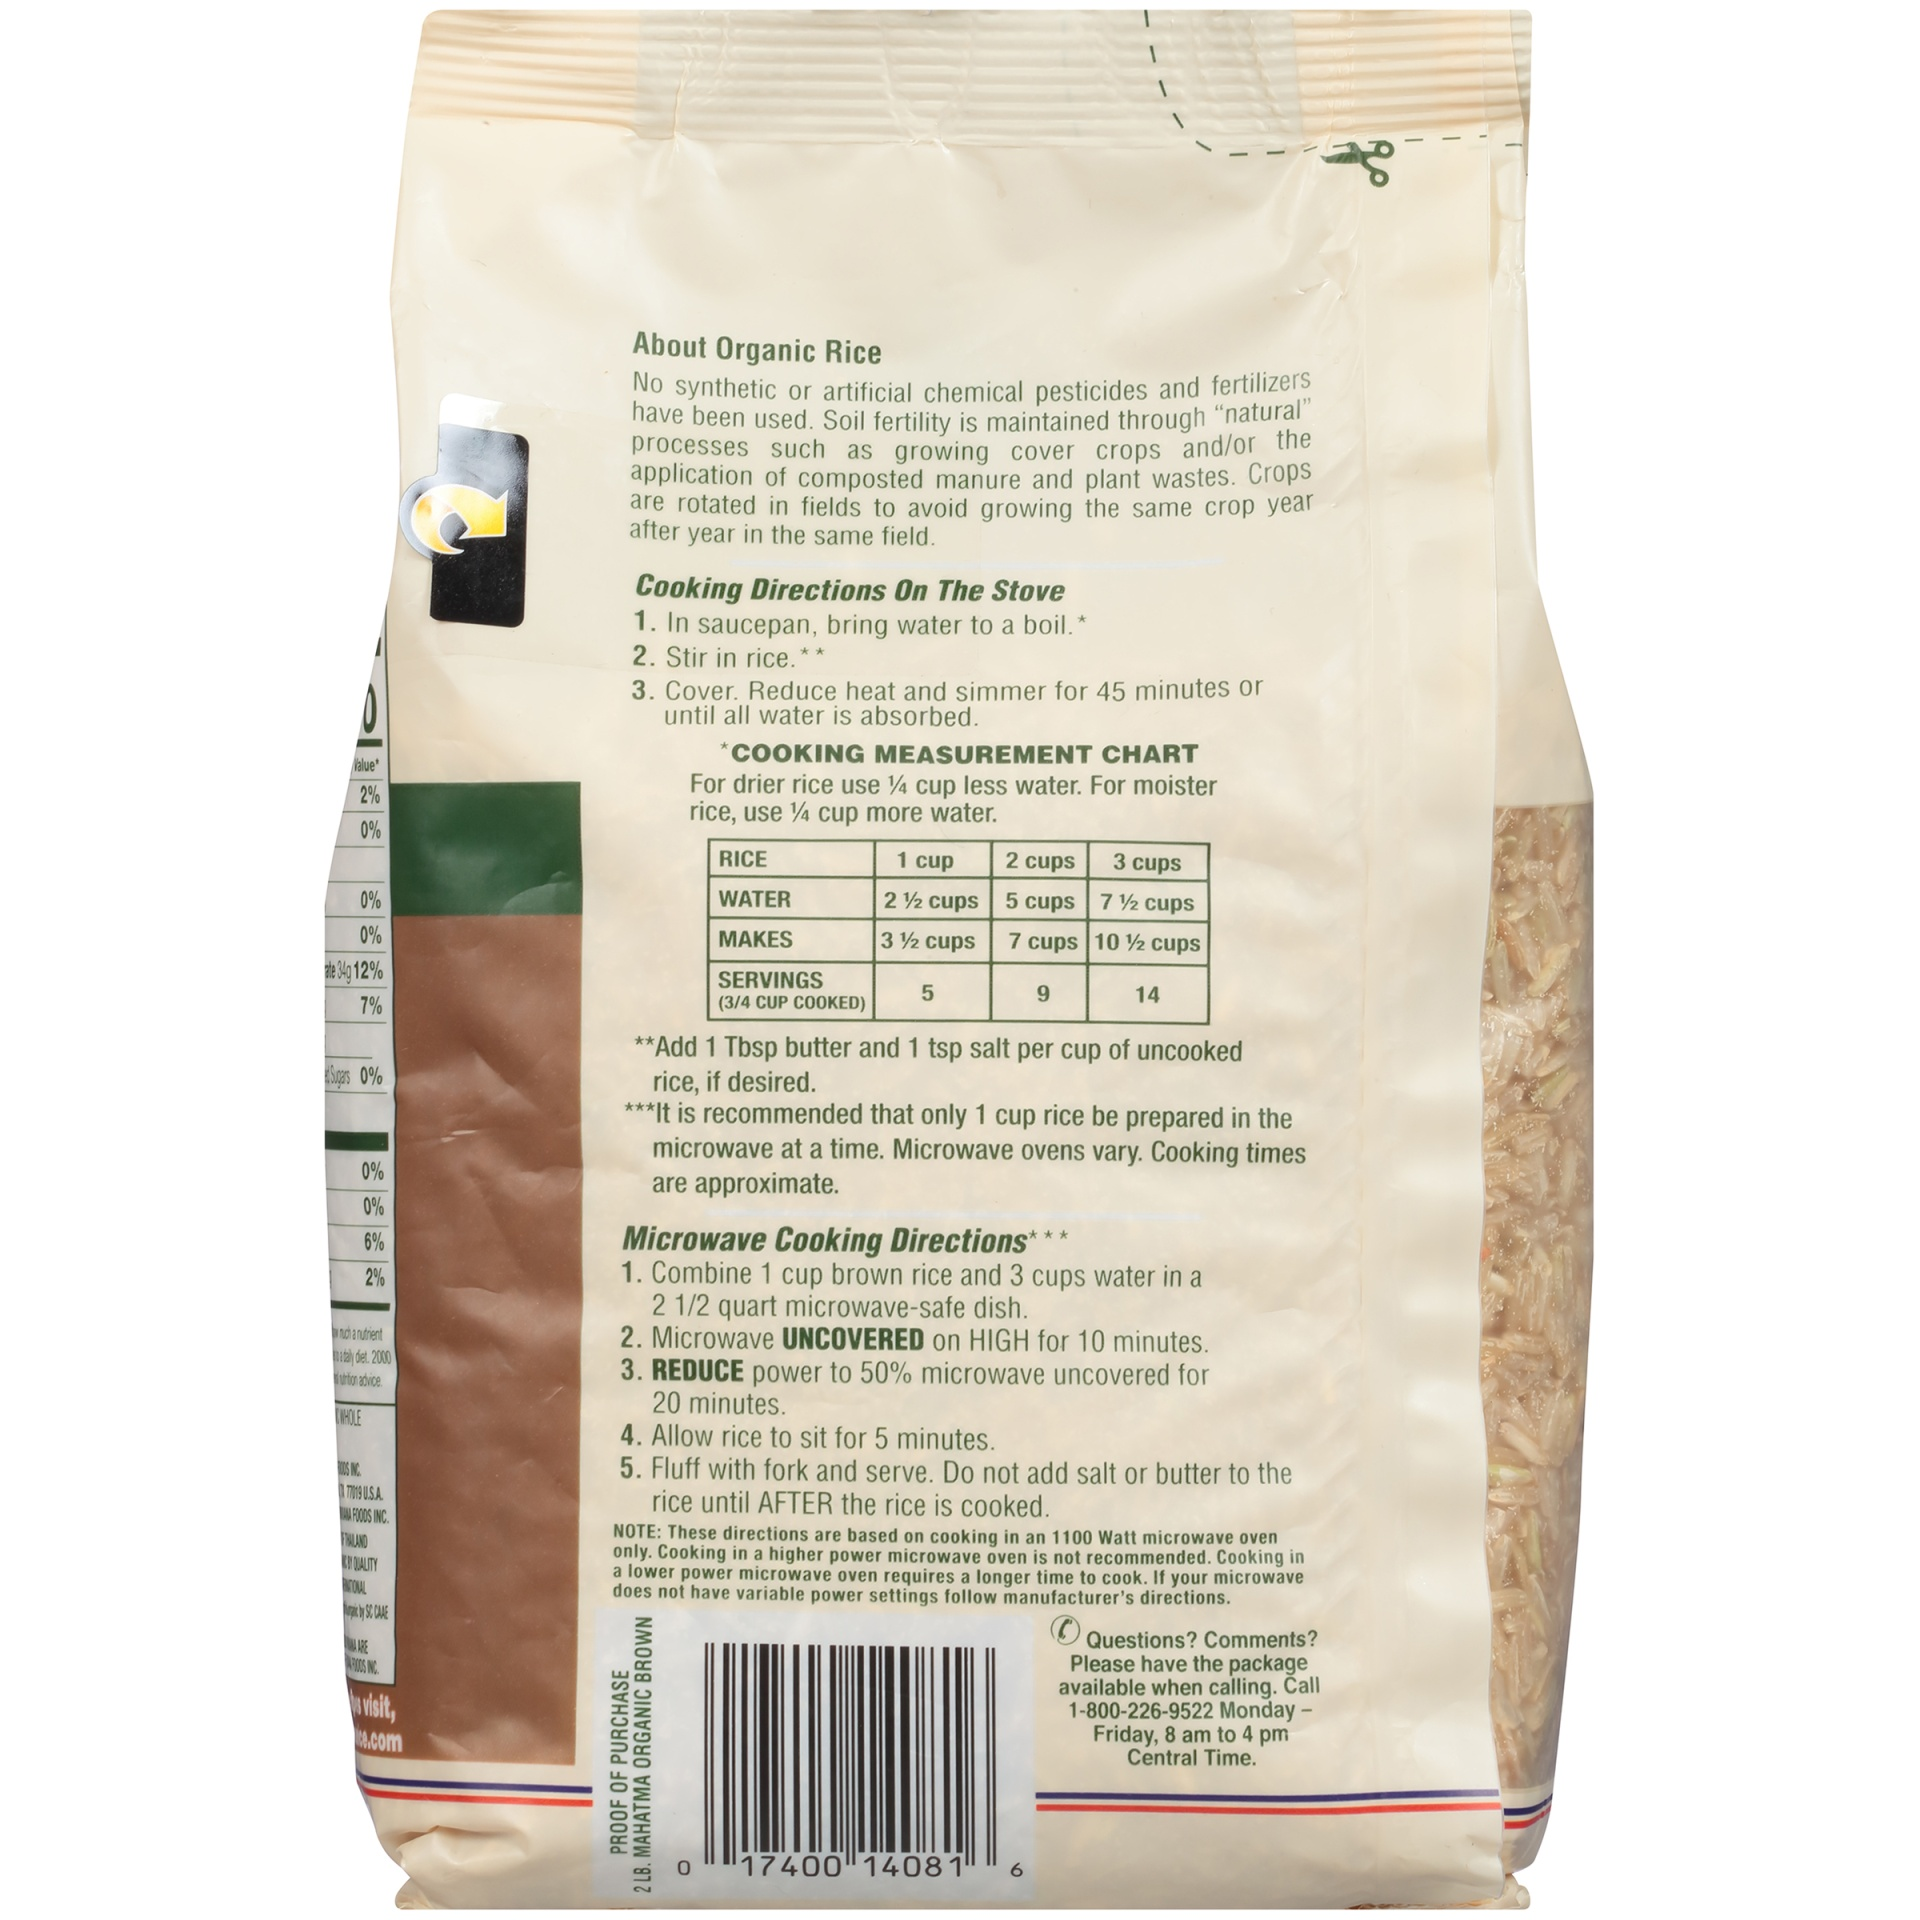 slide 6 of 8, Mahatma Organic Brown Rice,